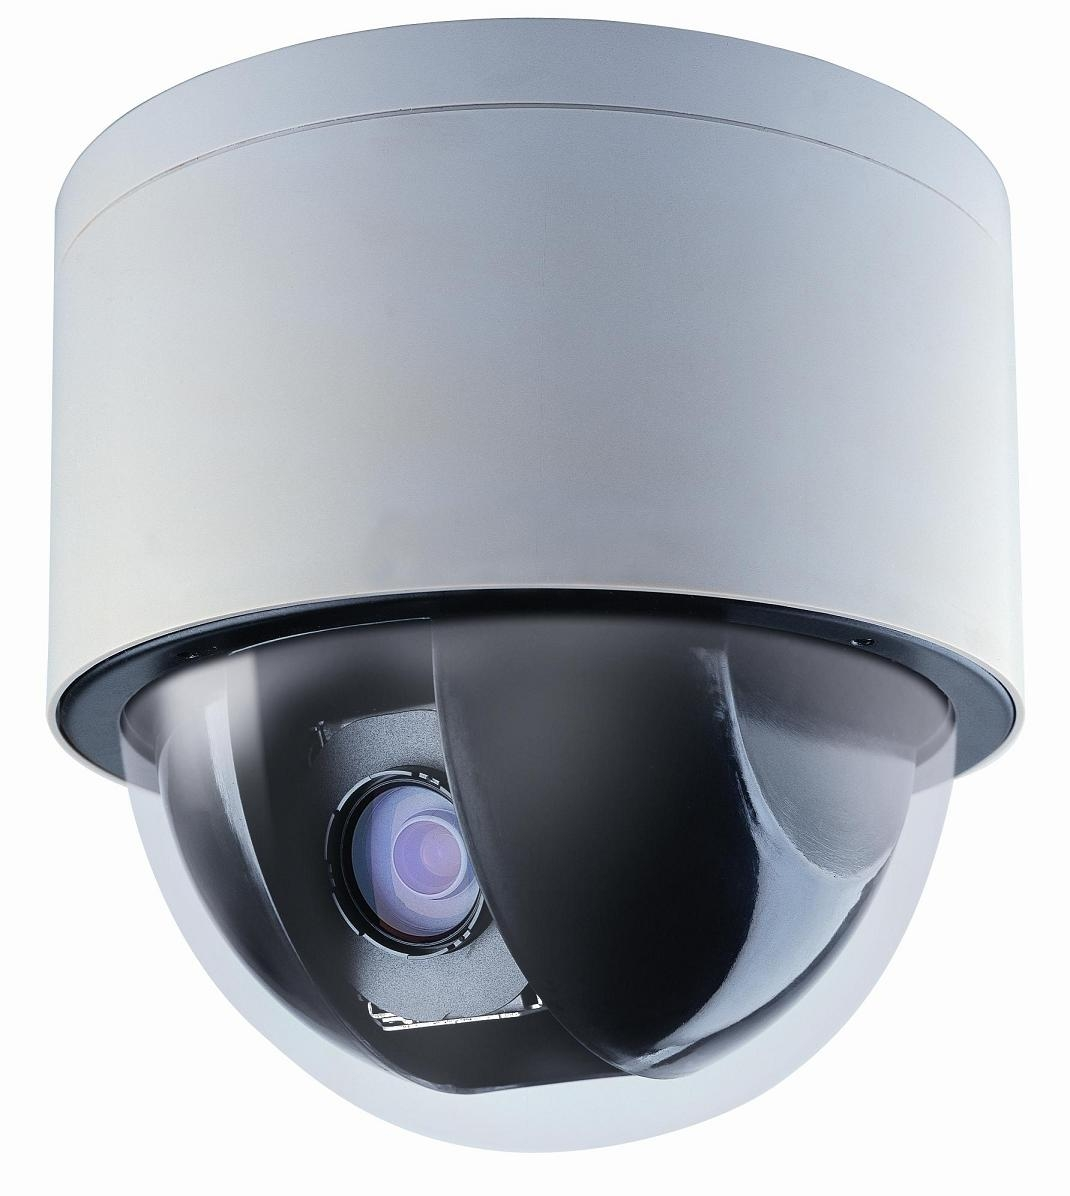 Camera De Surveillance Exterieur Wifi Motorisee Camera Ptz Ziloo Fr